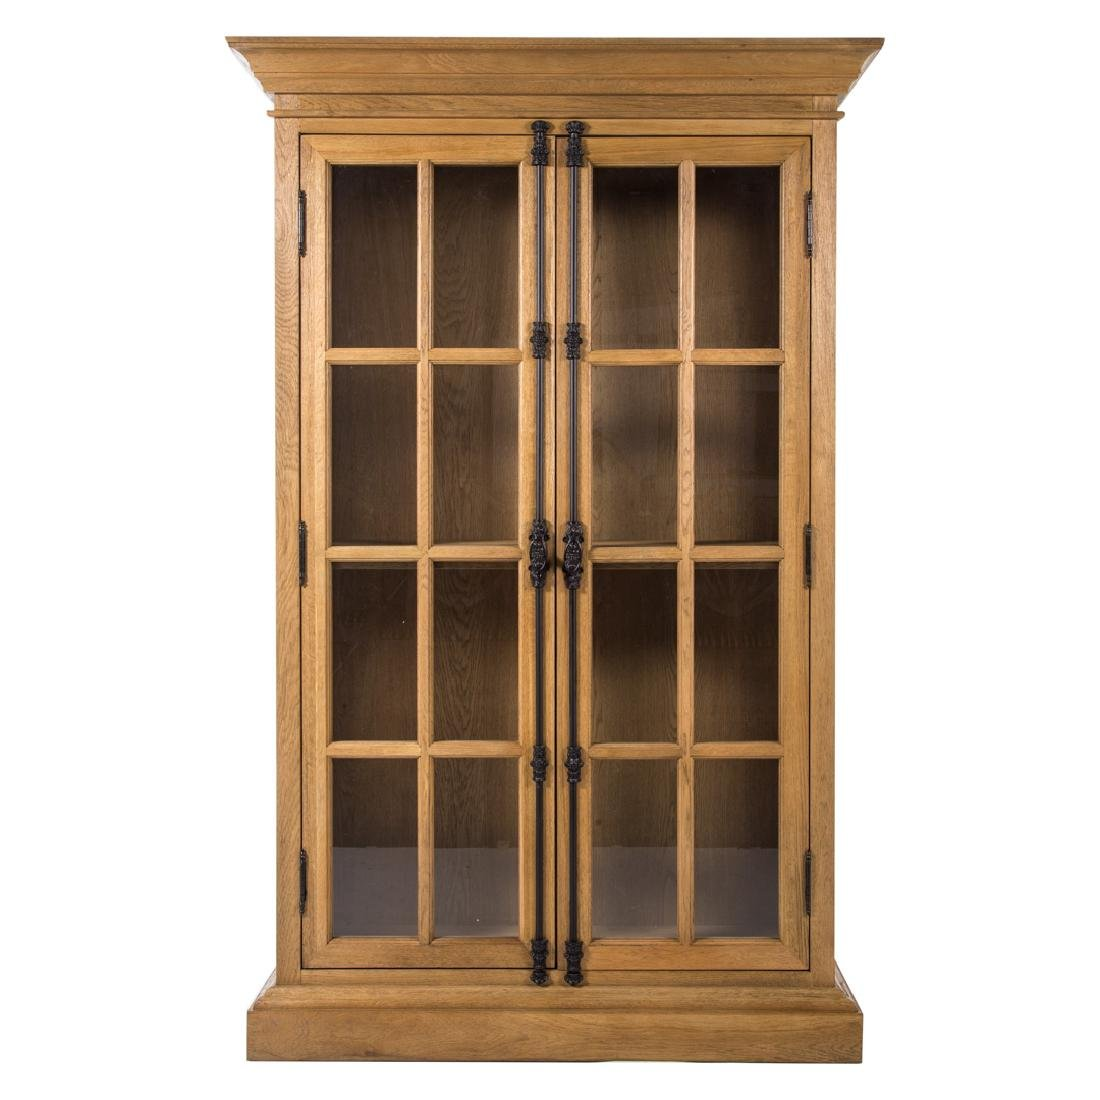 Contemporary bleached oak country style bookcase